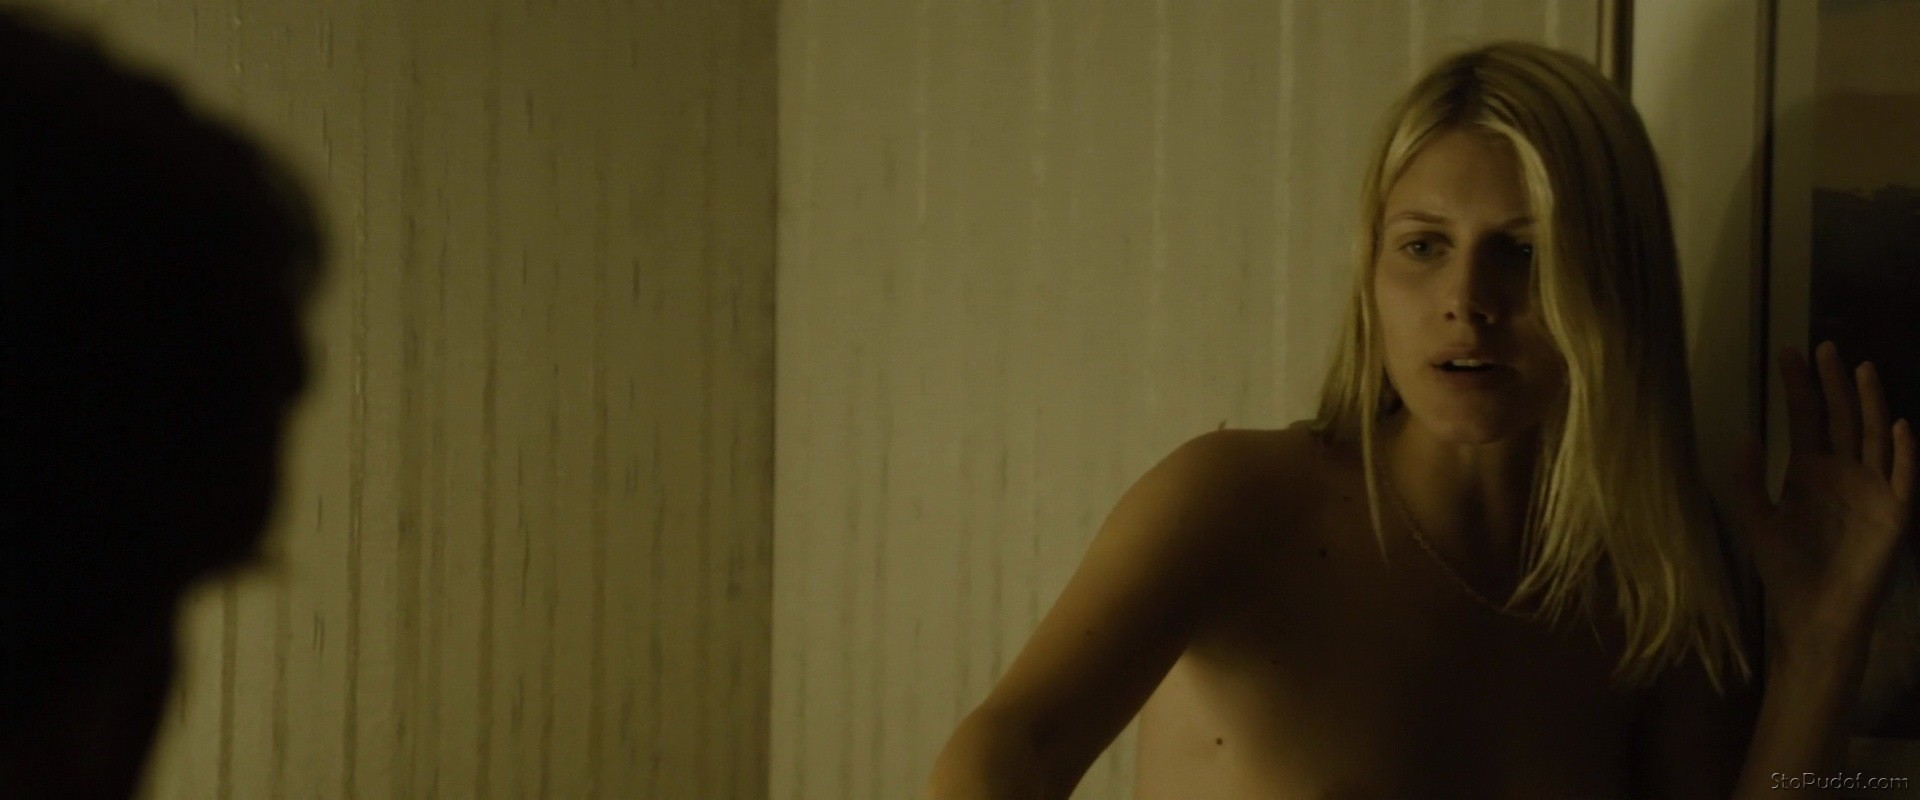 new nude Melanie Laurent - UkPhotoSafari